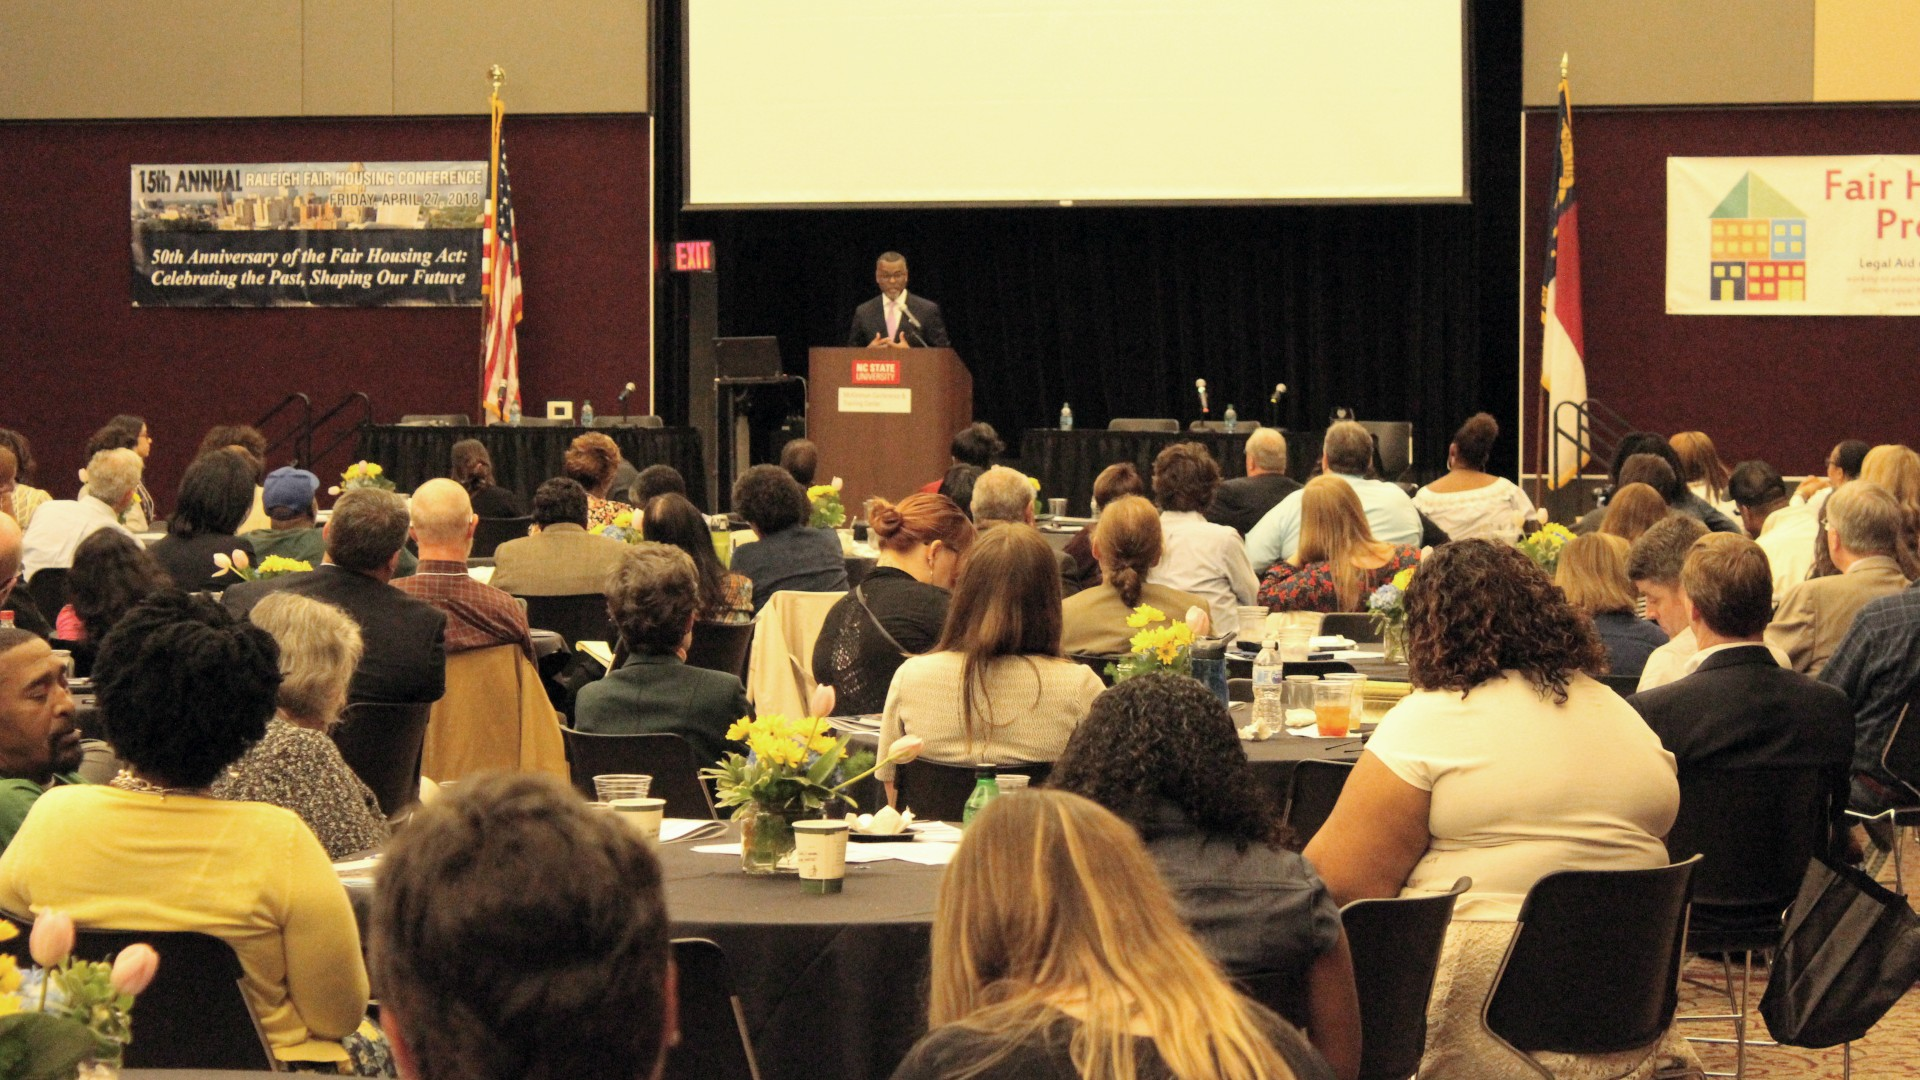 Seated crowd viewing speaker at fair Housing Conference